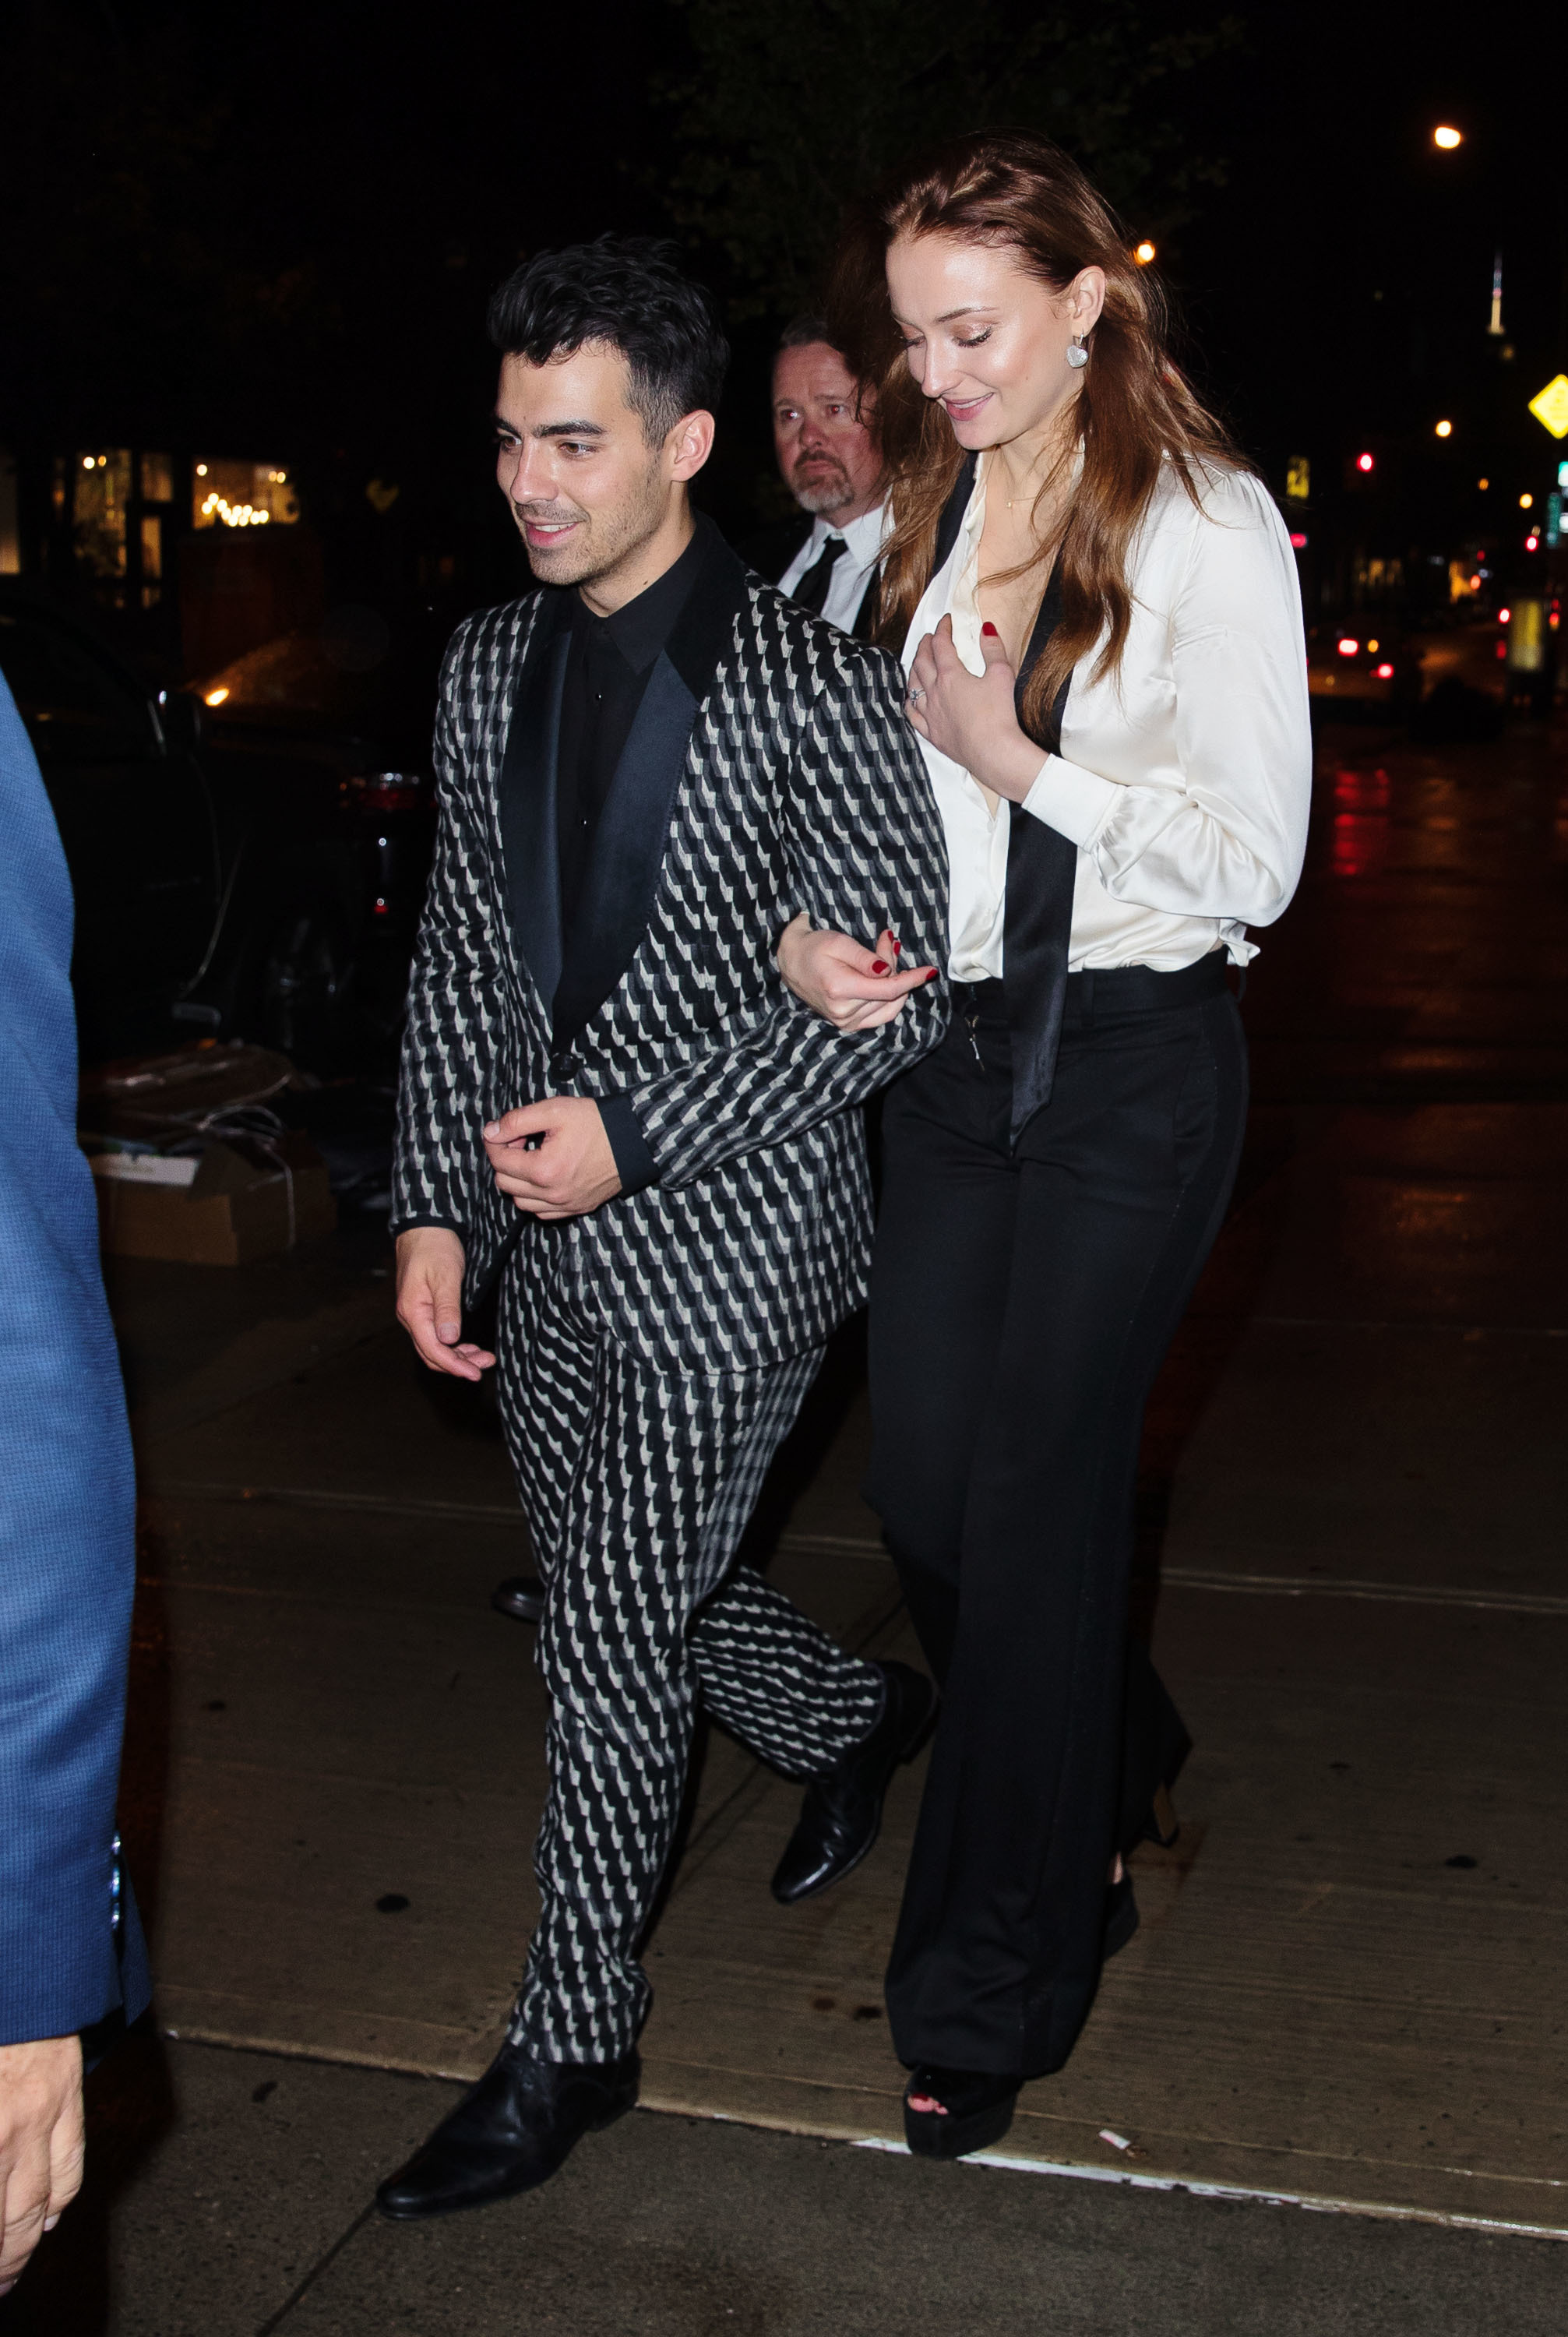 Joe Jonas and Sophie Turner celebrate their engagement